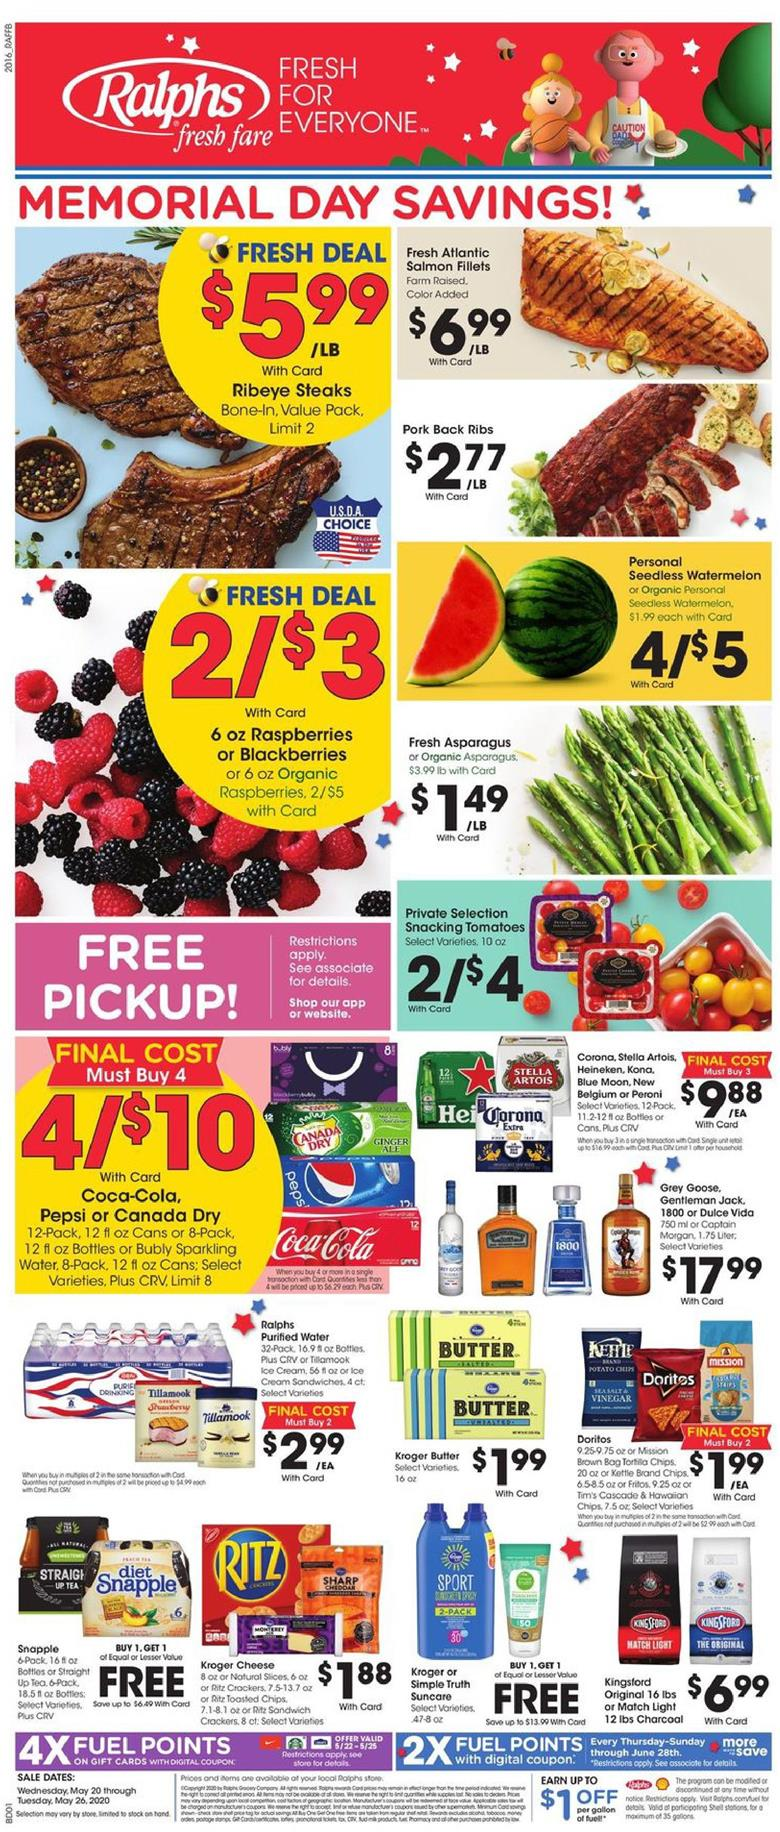 Ralphs May Grocery Weekly Ad valid from May 20 – 26, 2020